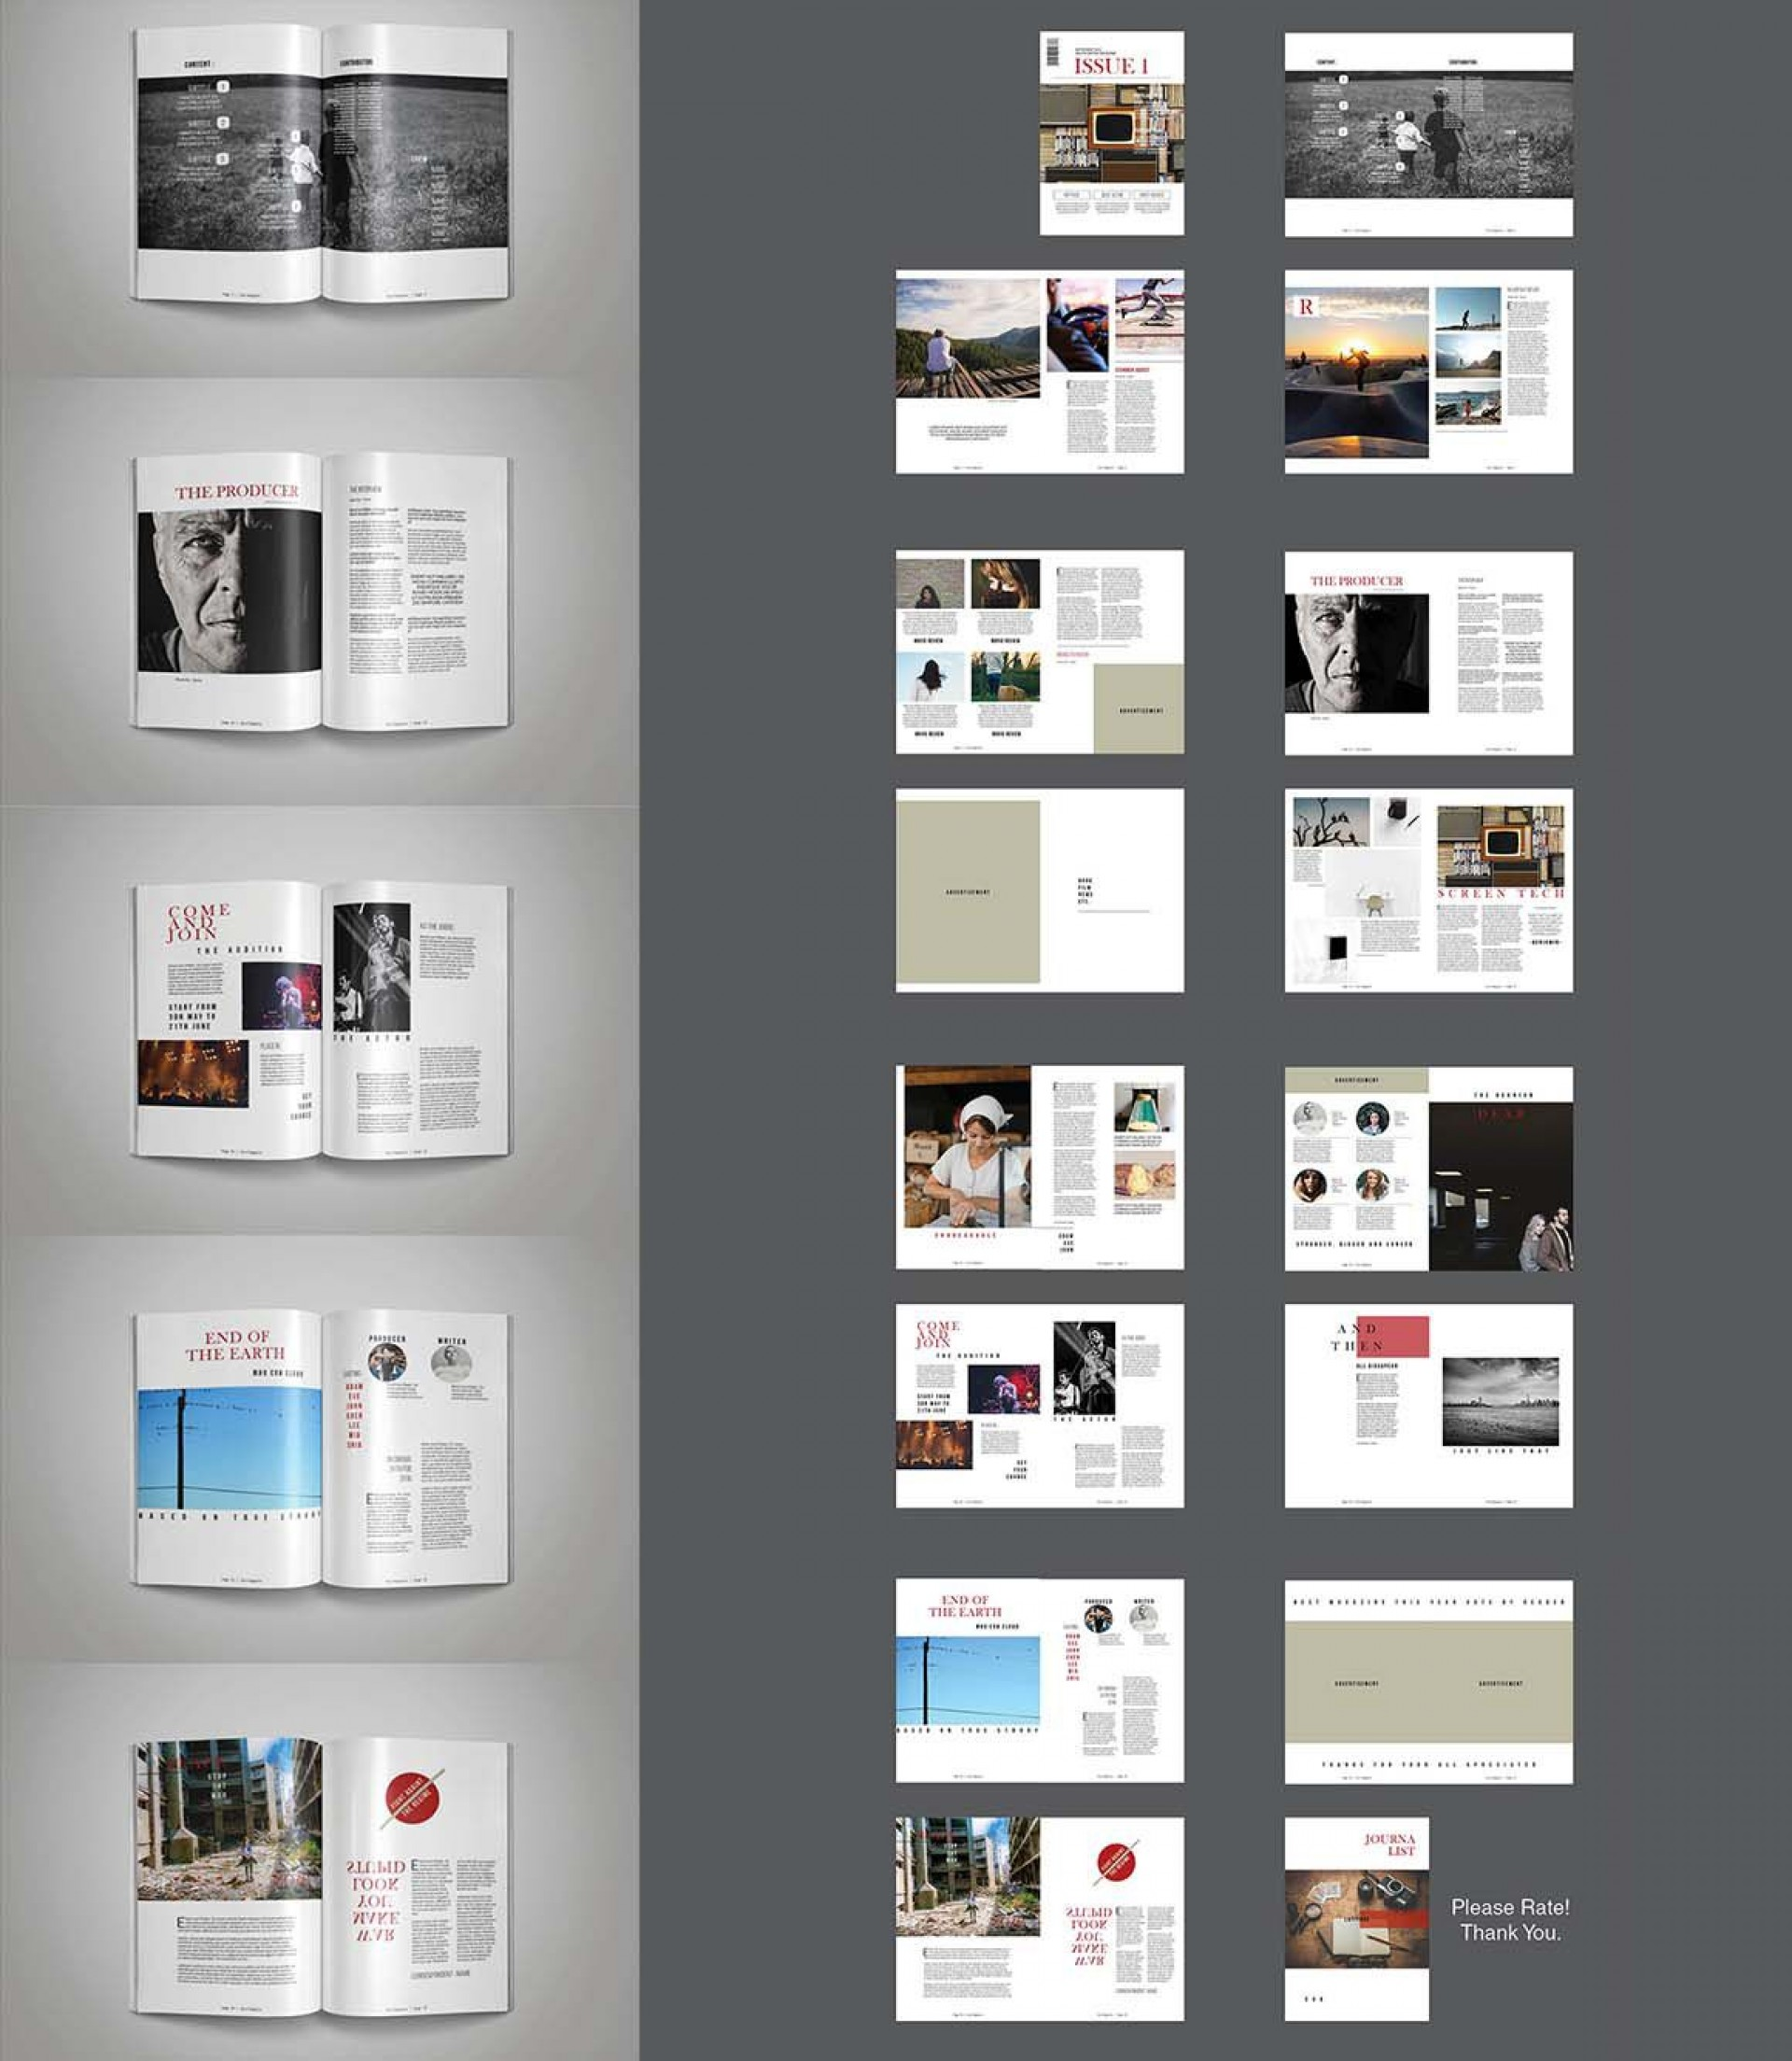 009 Stirring Free Magazine Layout Template Example  Templates For Word Microsoft Powerpoint1920